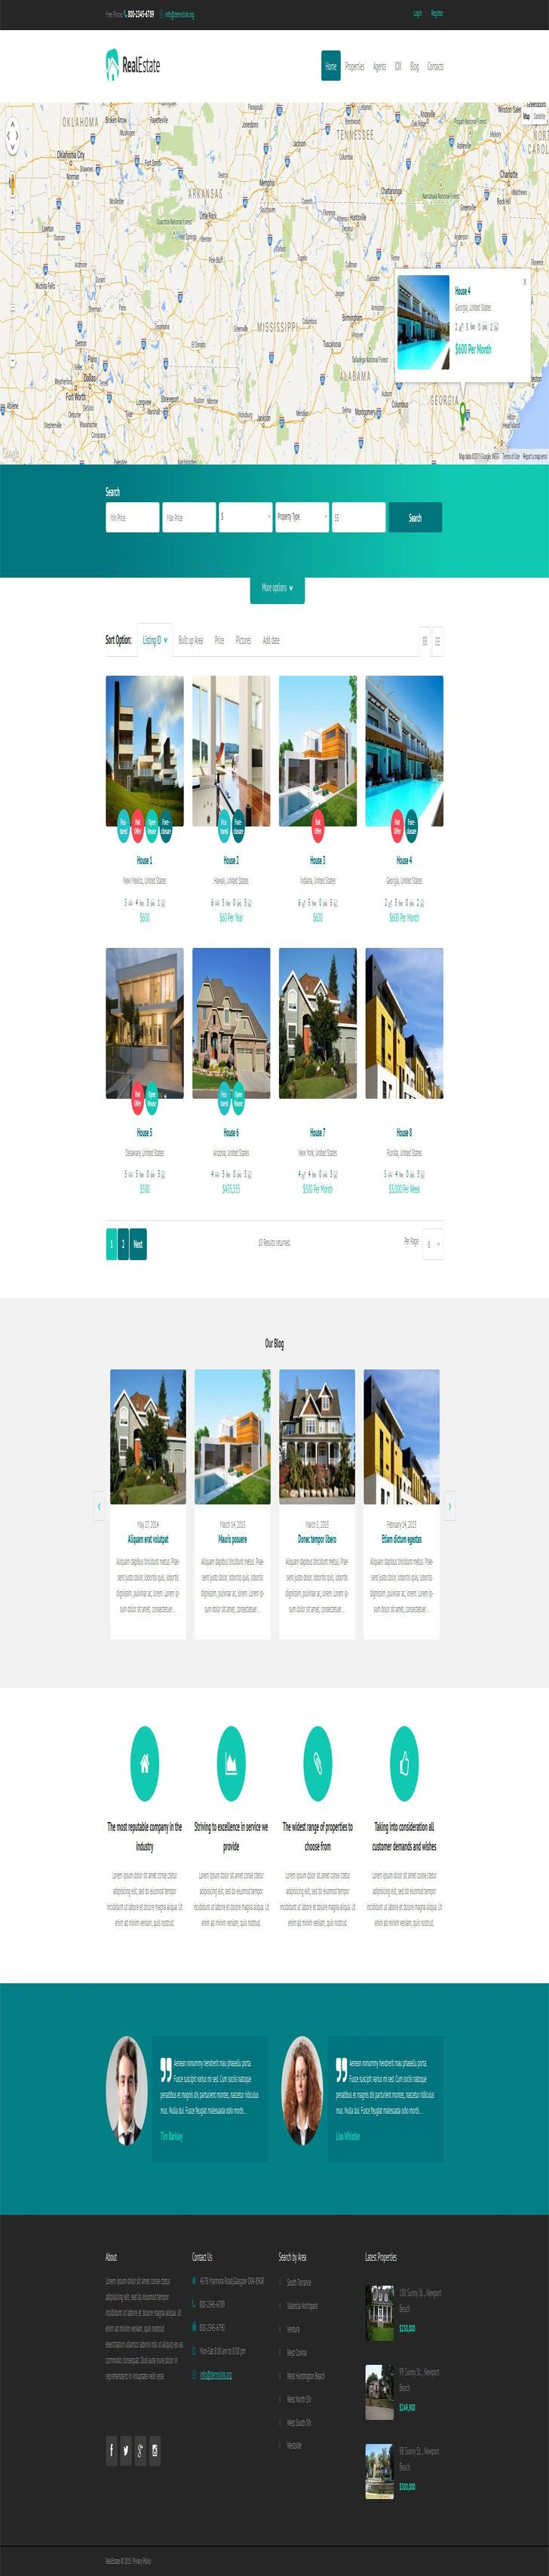 #Real #Estate #Agency #Responsive #WordPress #Theme.herry Framework Version:3.1.4 WordPress Compatibility:3.6.x-4.2.x WordPress Engine:4.1.x Additional Features:Advanced Theme Options, Sliced PSD, Back To Top Button, Calendar, Crossbrowser Compatibility, Custom Page Templates, Dropdown Menu, Favicon, Google map, Google Web Fonts, Social Options, Sortable Gallery, Tabs, Tag Cloud, Tooltips Additional Info:Well Documented Animation:HTML plus JS